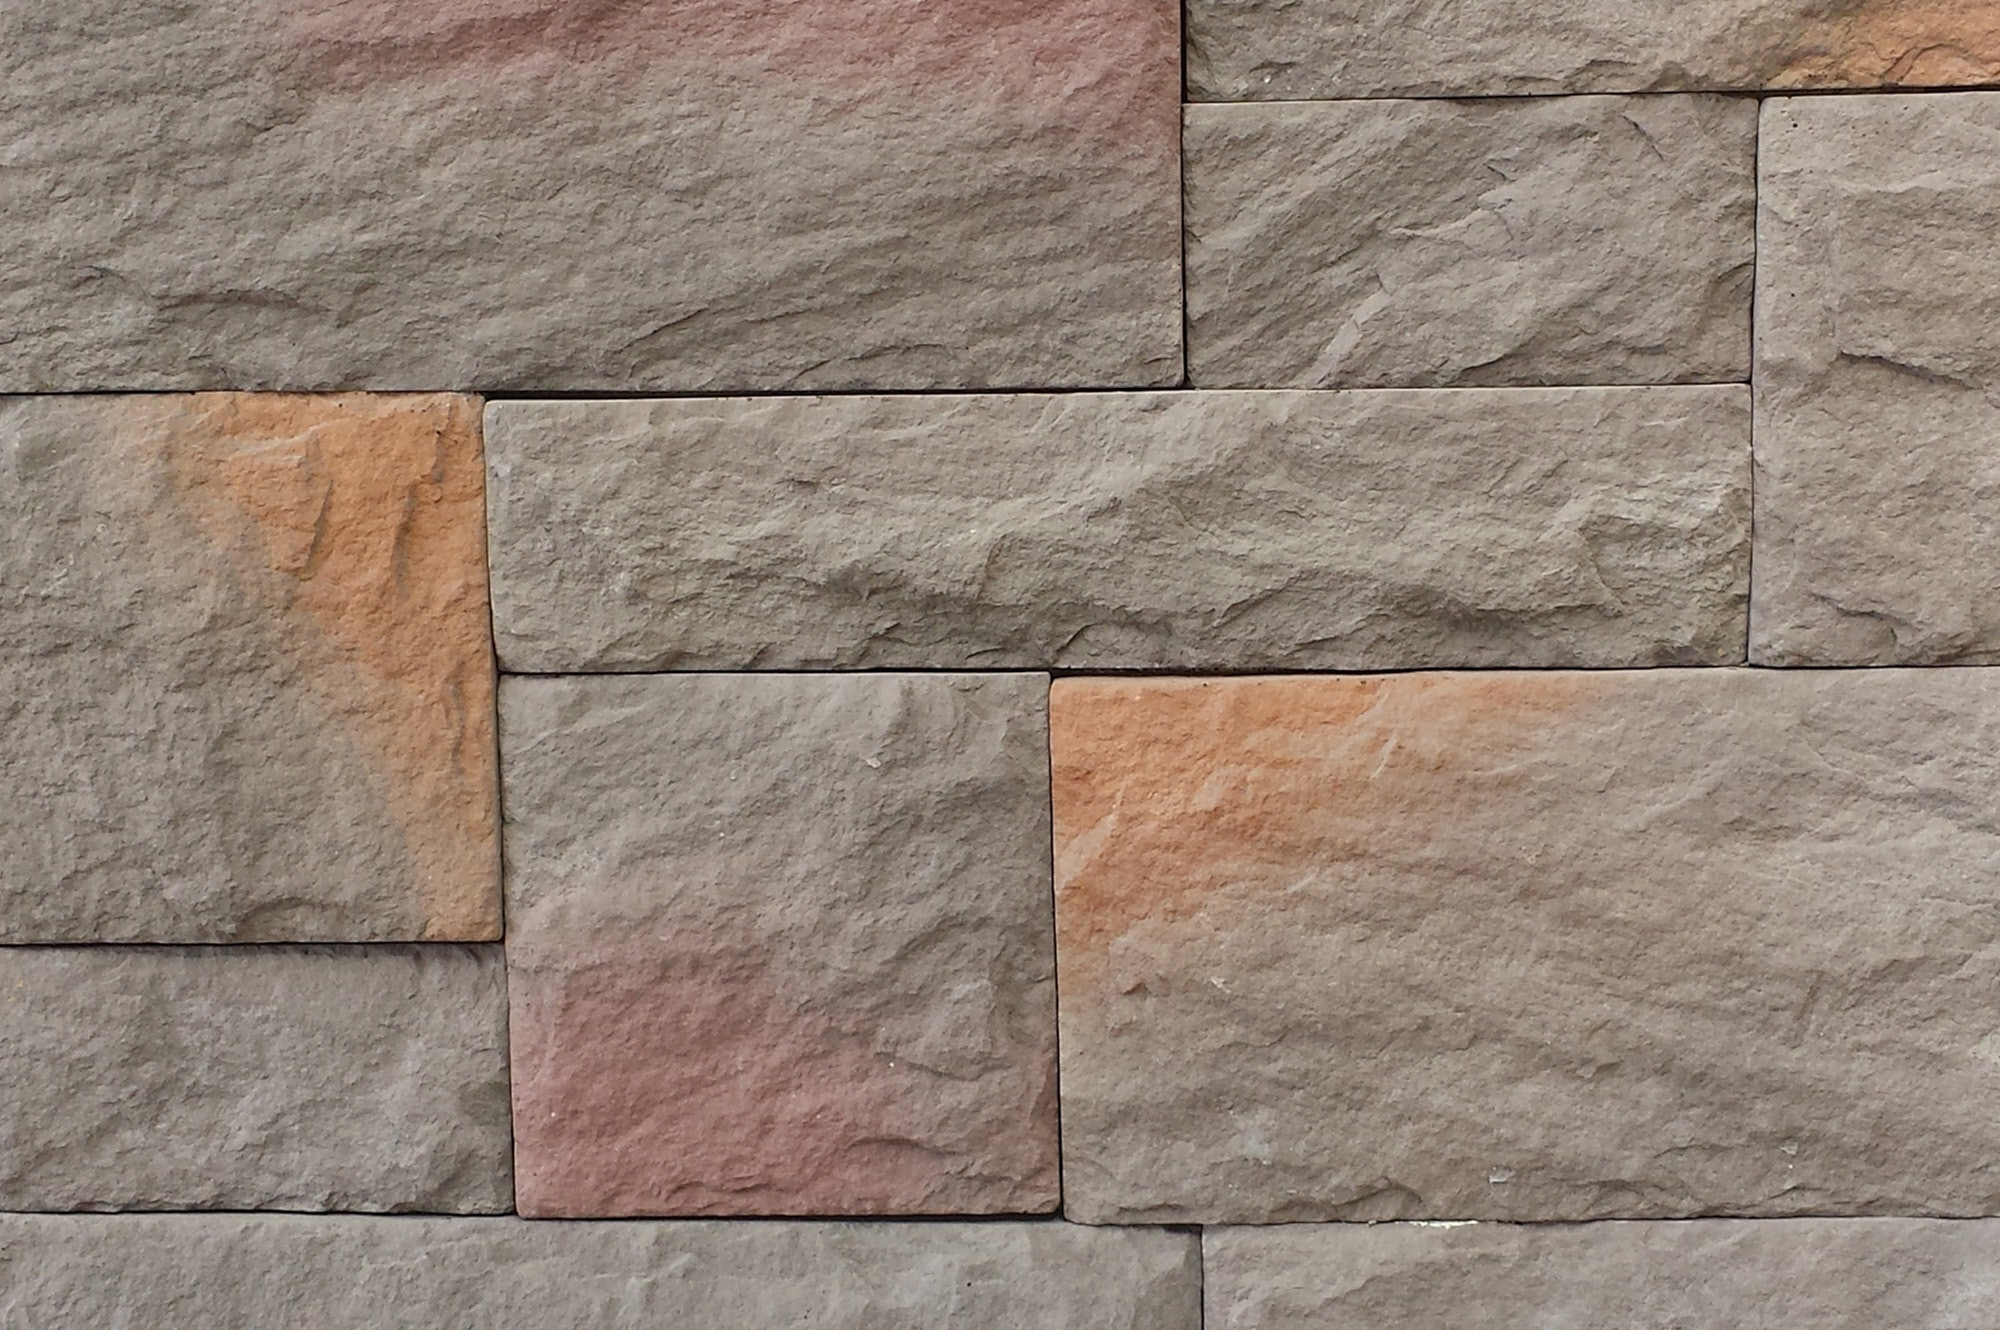 free samples: black bear pallets manufactured stone - castle rock